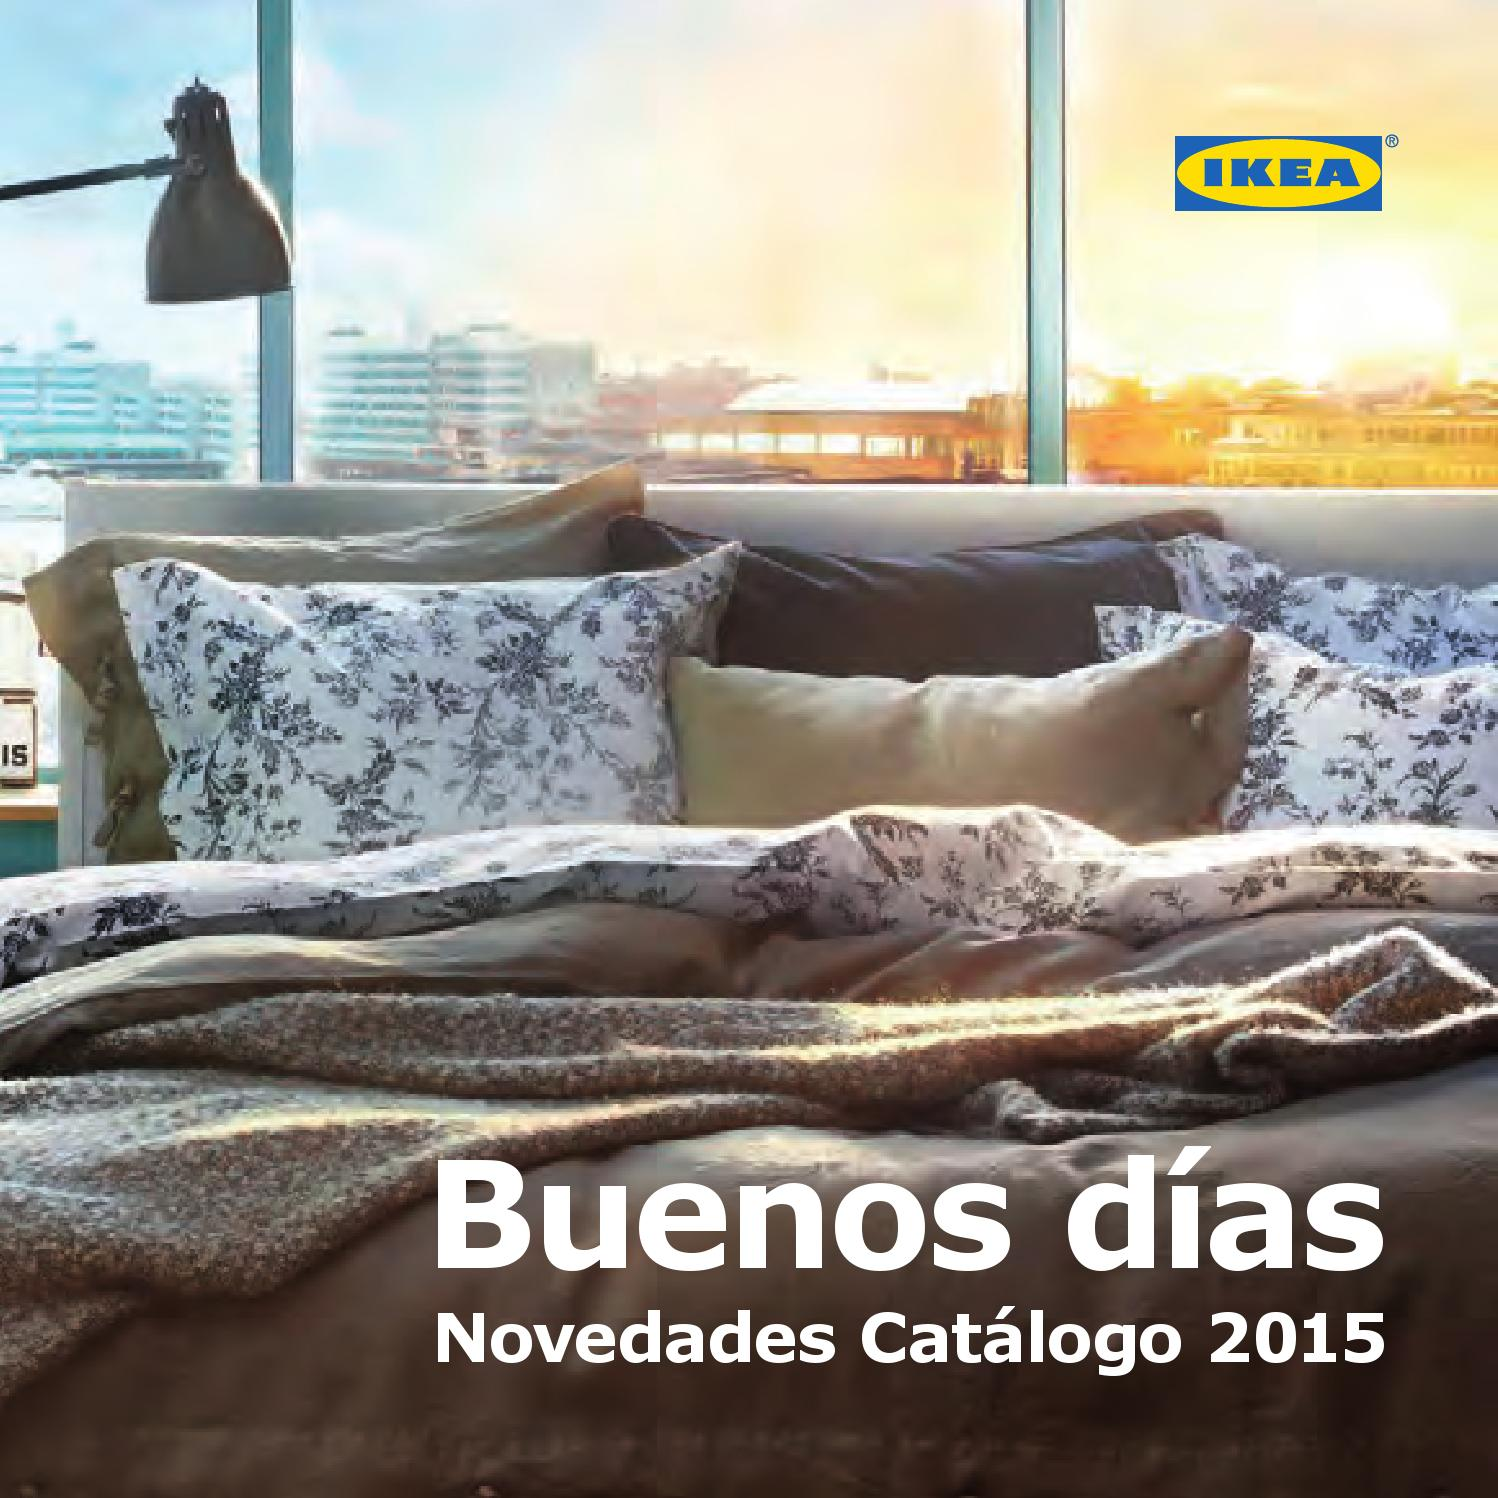 Catalogo ikea novedades 2015 by losdescuentos for Catalogo jardin ikea 2015